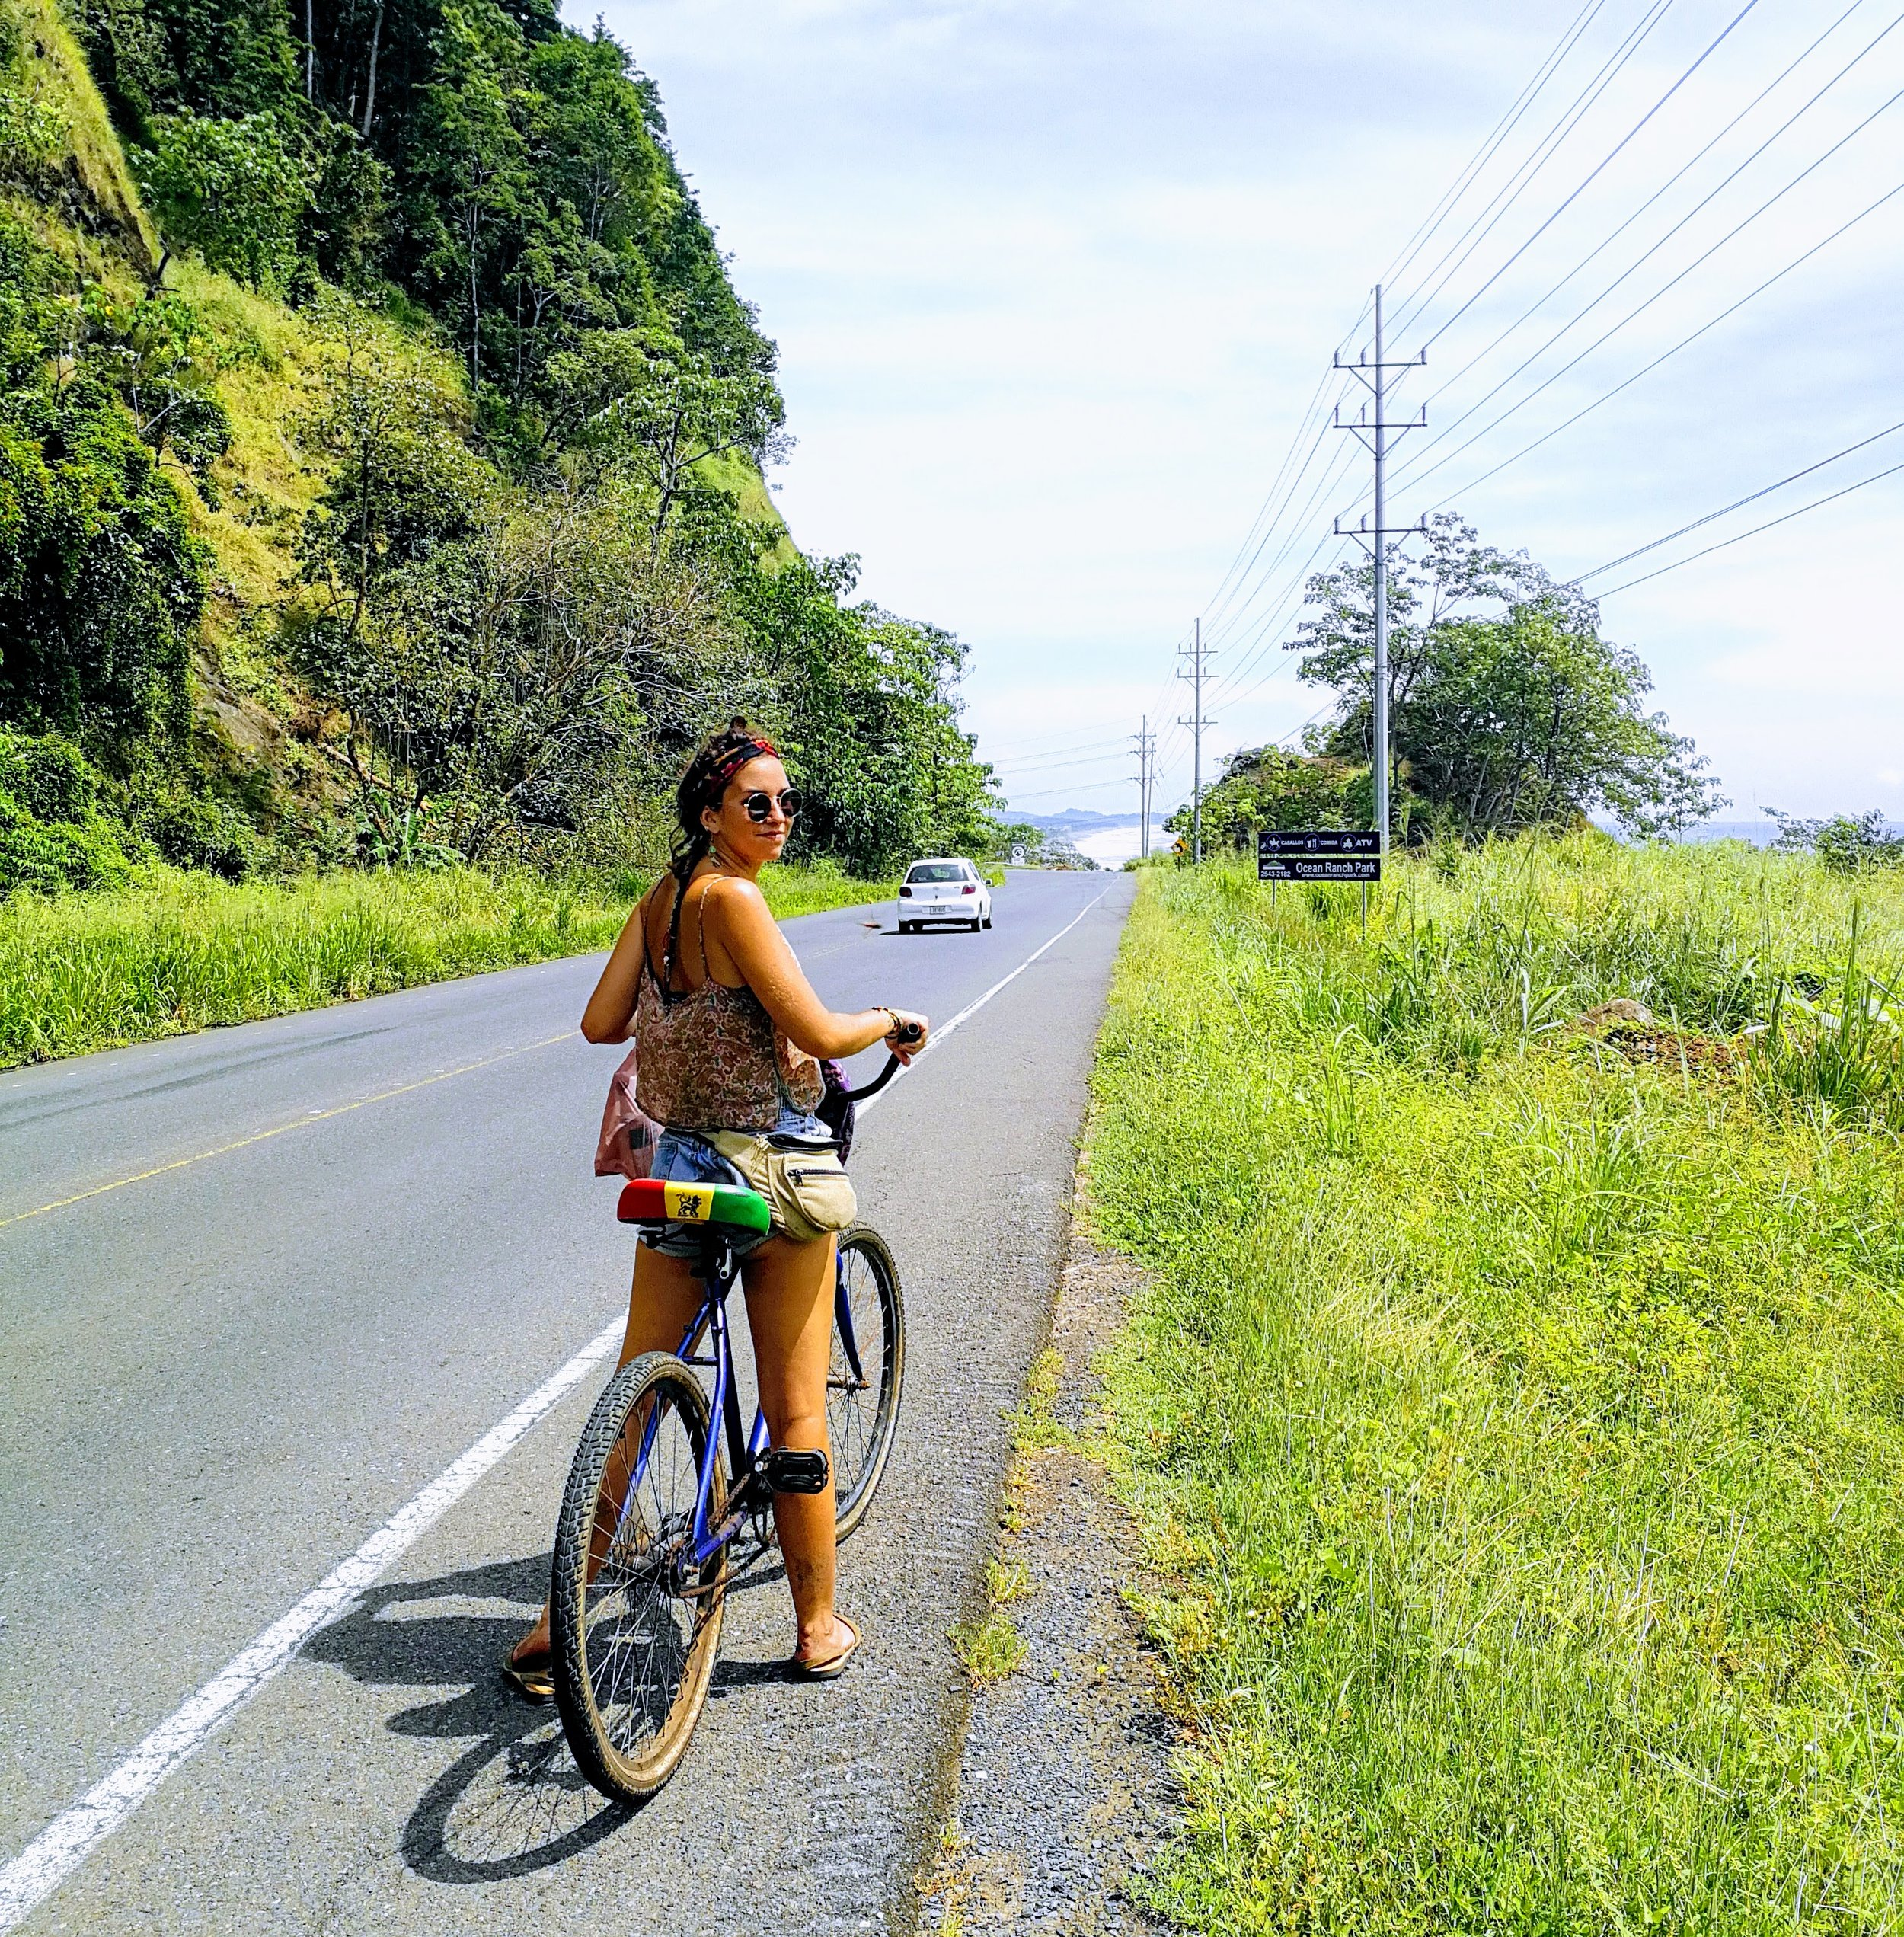 Use eco-friendly forms of transportation once you reach your destination. Riding a bicycle can be the perfect way to get exercise and see a new place. (Photo: Playa Hermosa, Costa Rica)